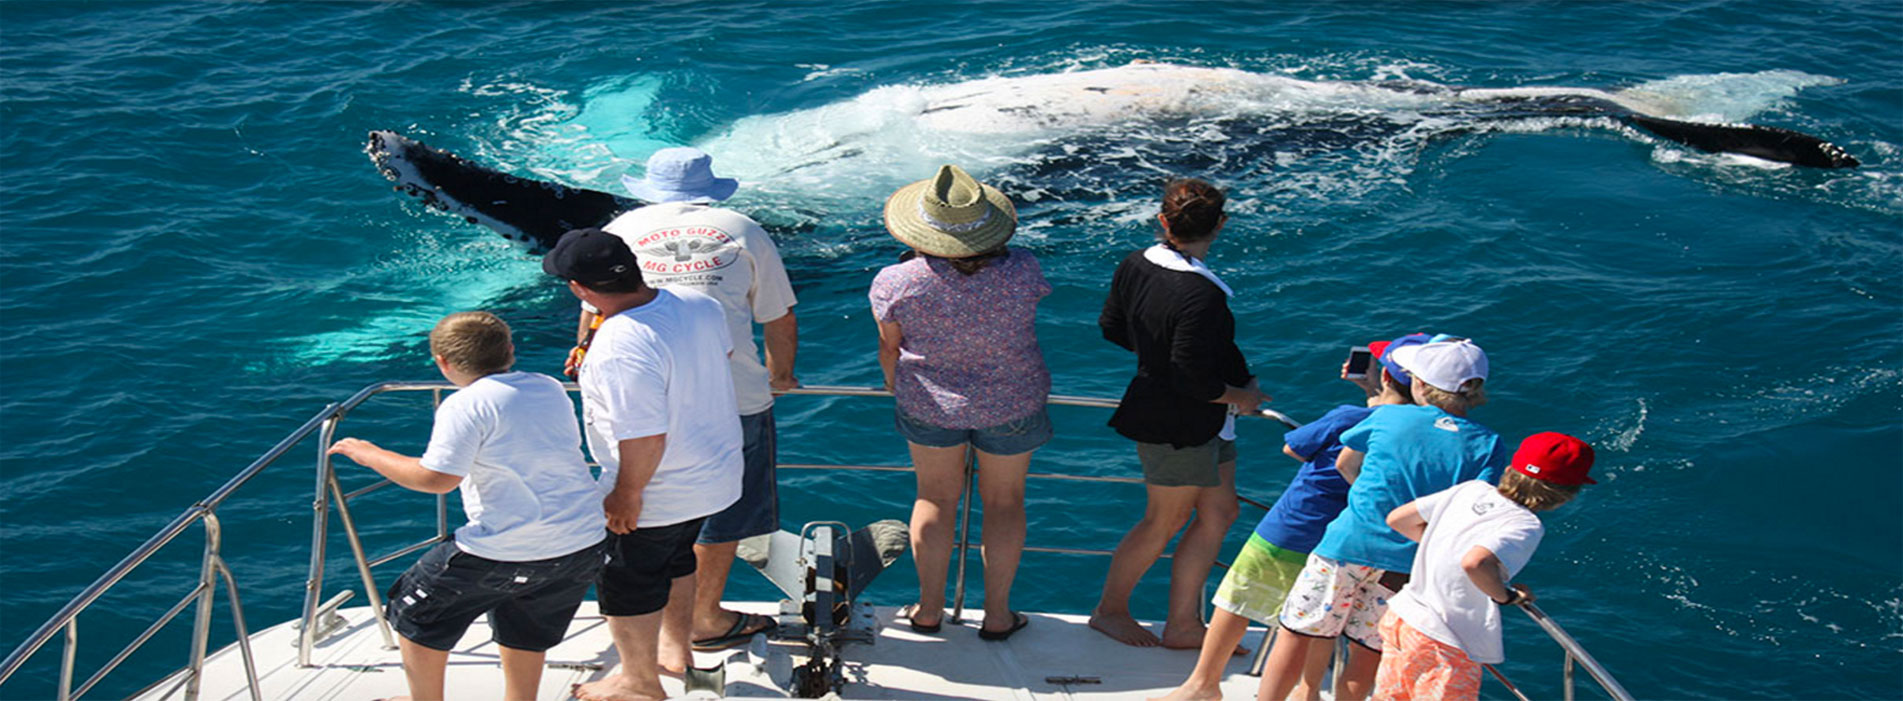 WHALE WATCHING BOAT TOURS passengers West Australia